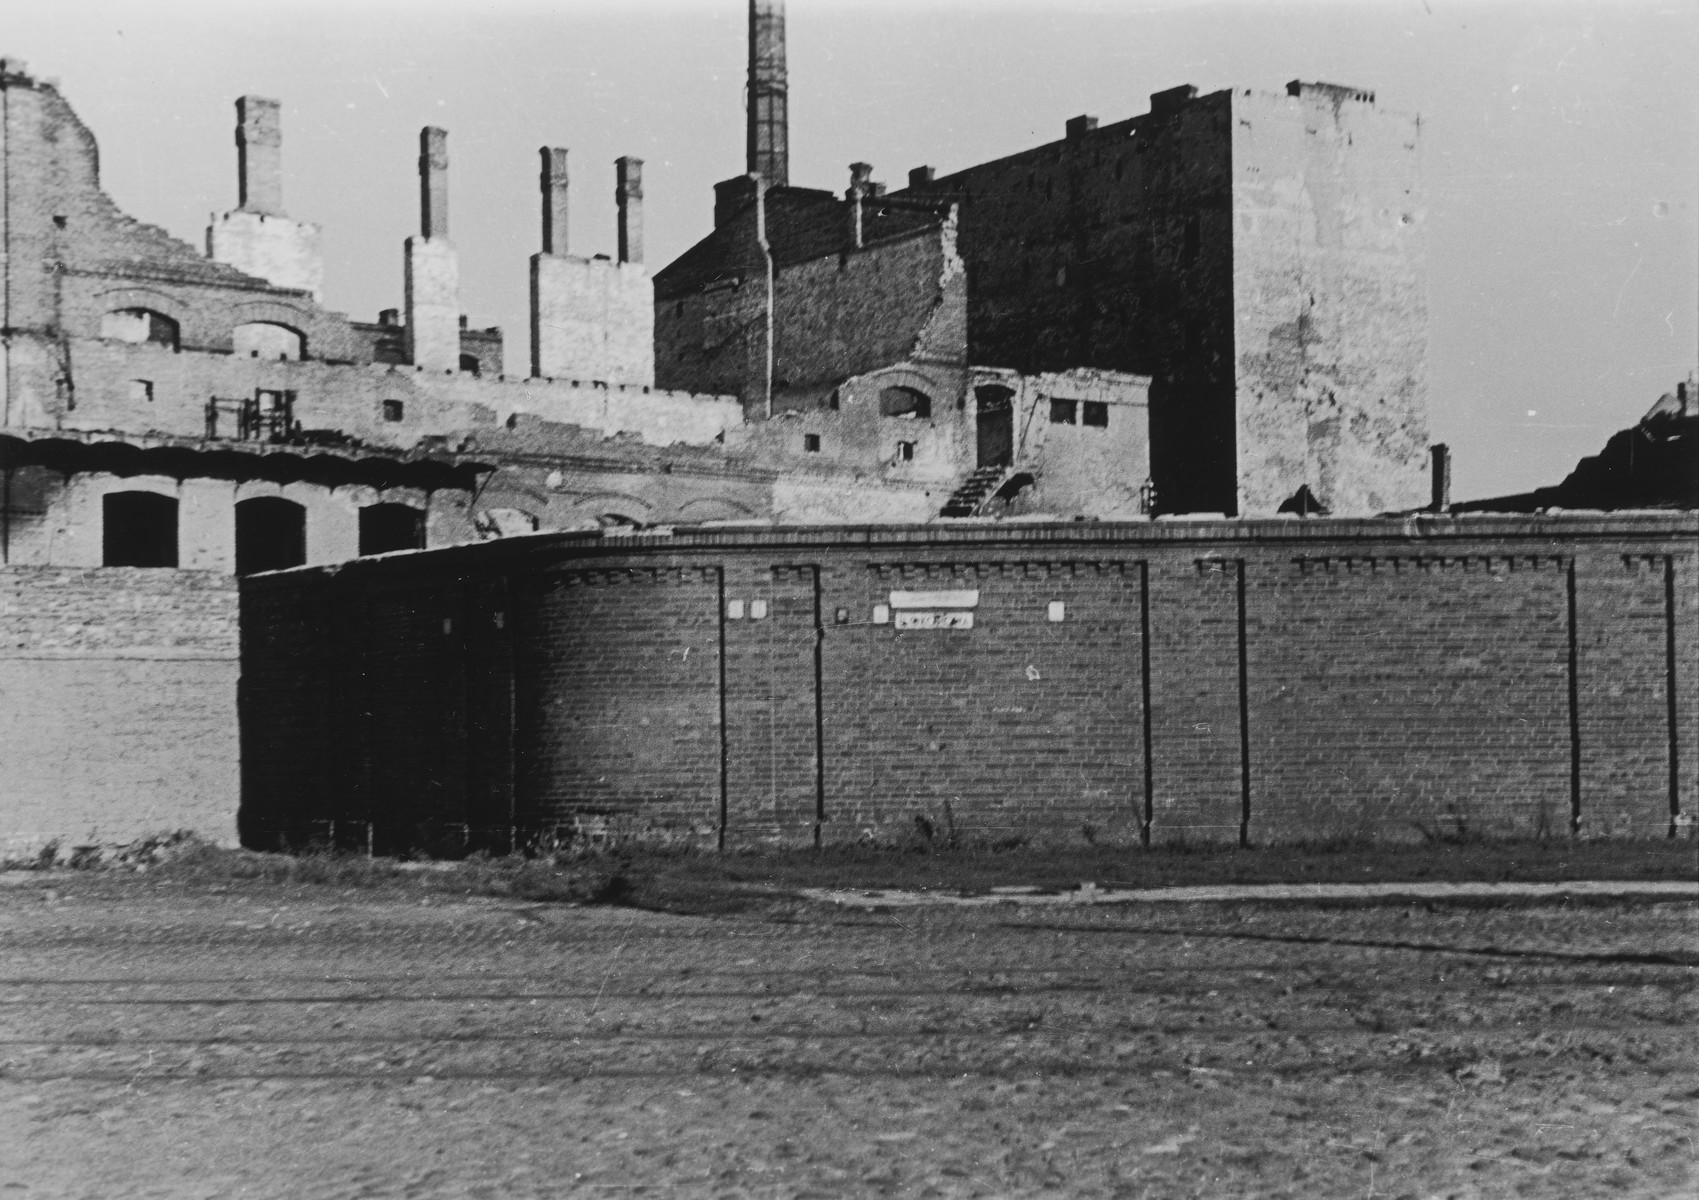 View of the wall surrounding the ruins of the Warsaw ghetto a few months after the ghetto's destruction.